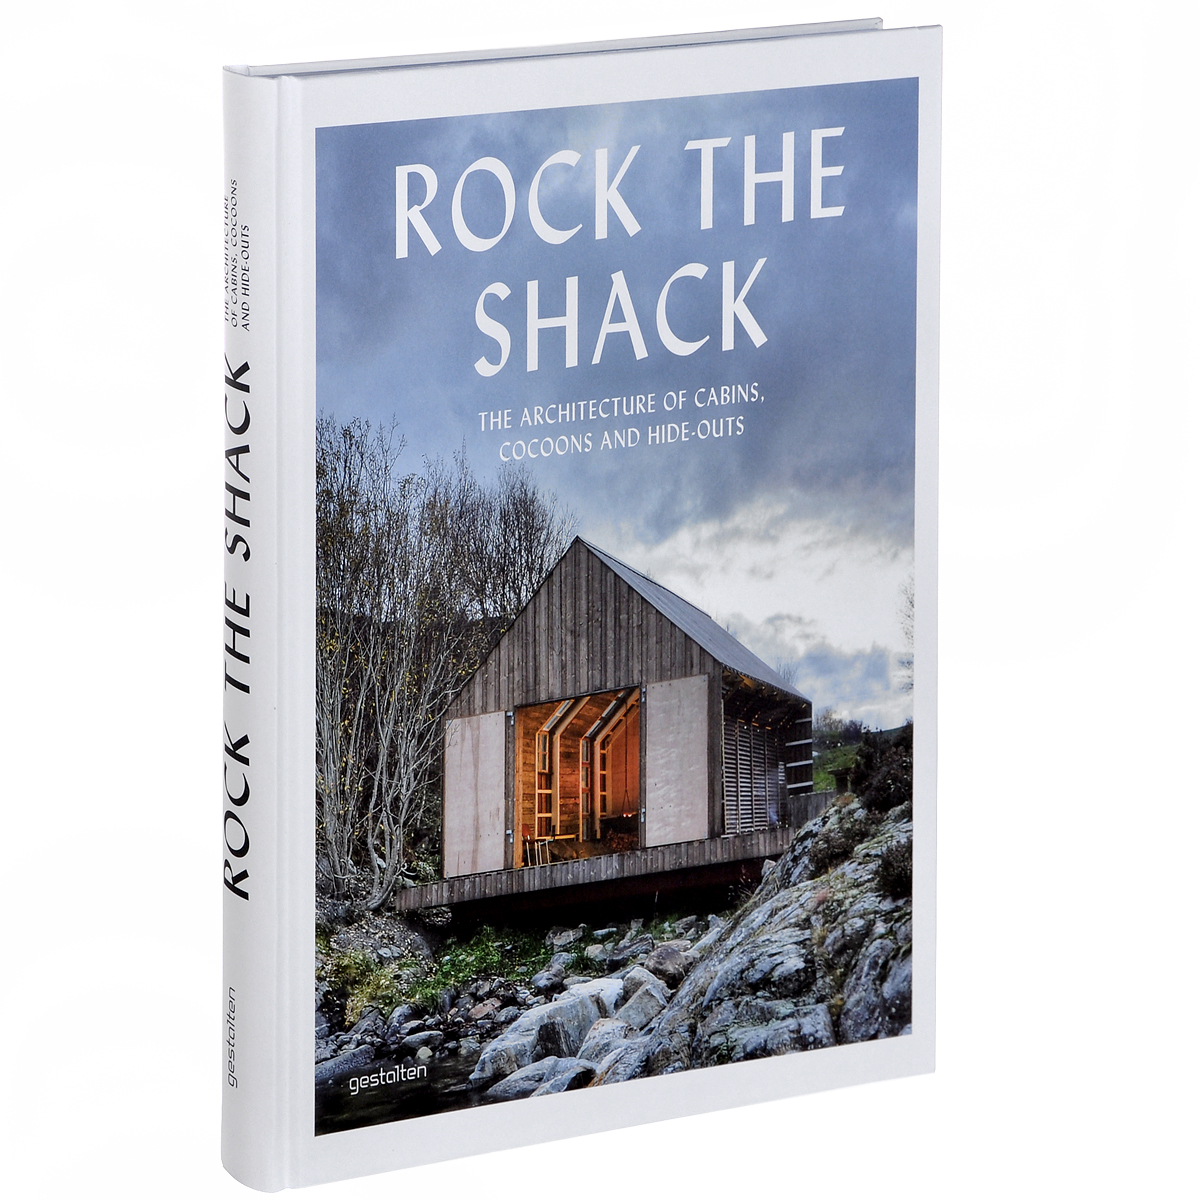 Rock the Shack: The Architecture of Cabins, Cocoons and Hide-Outs the dome of the rock